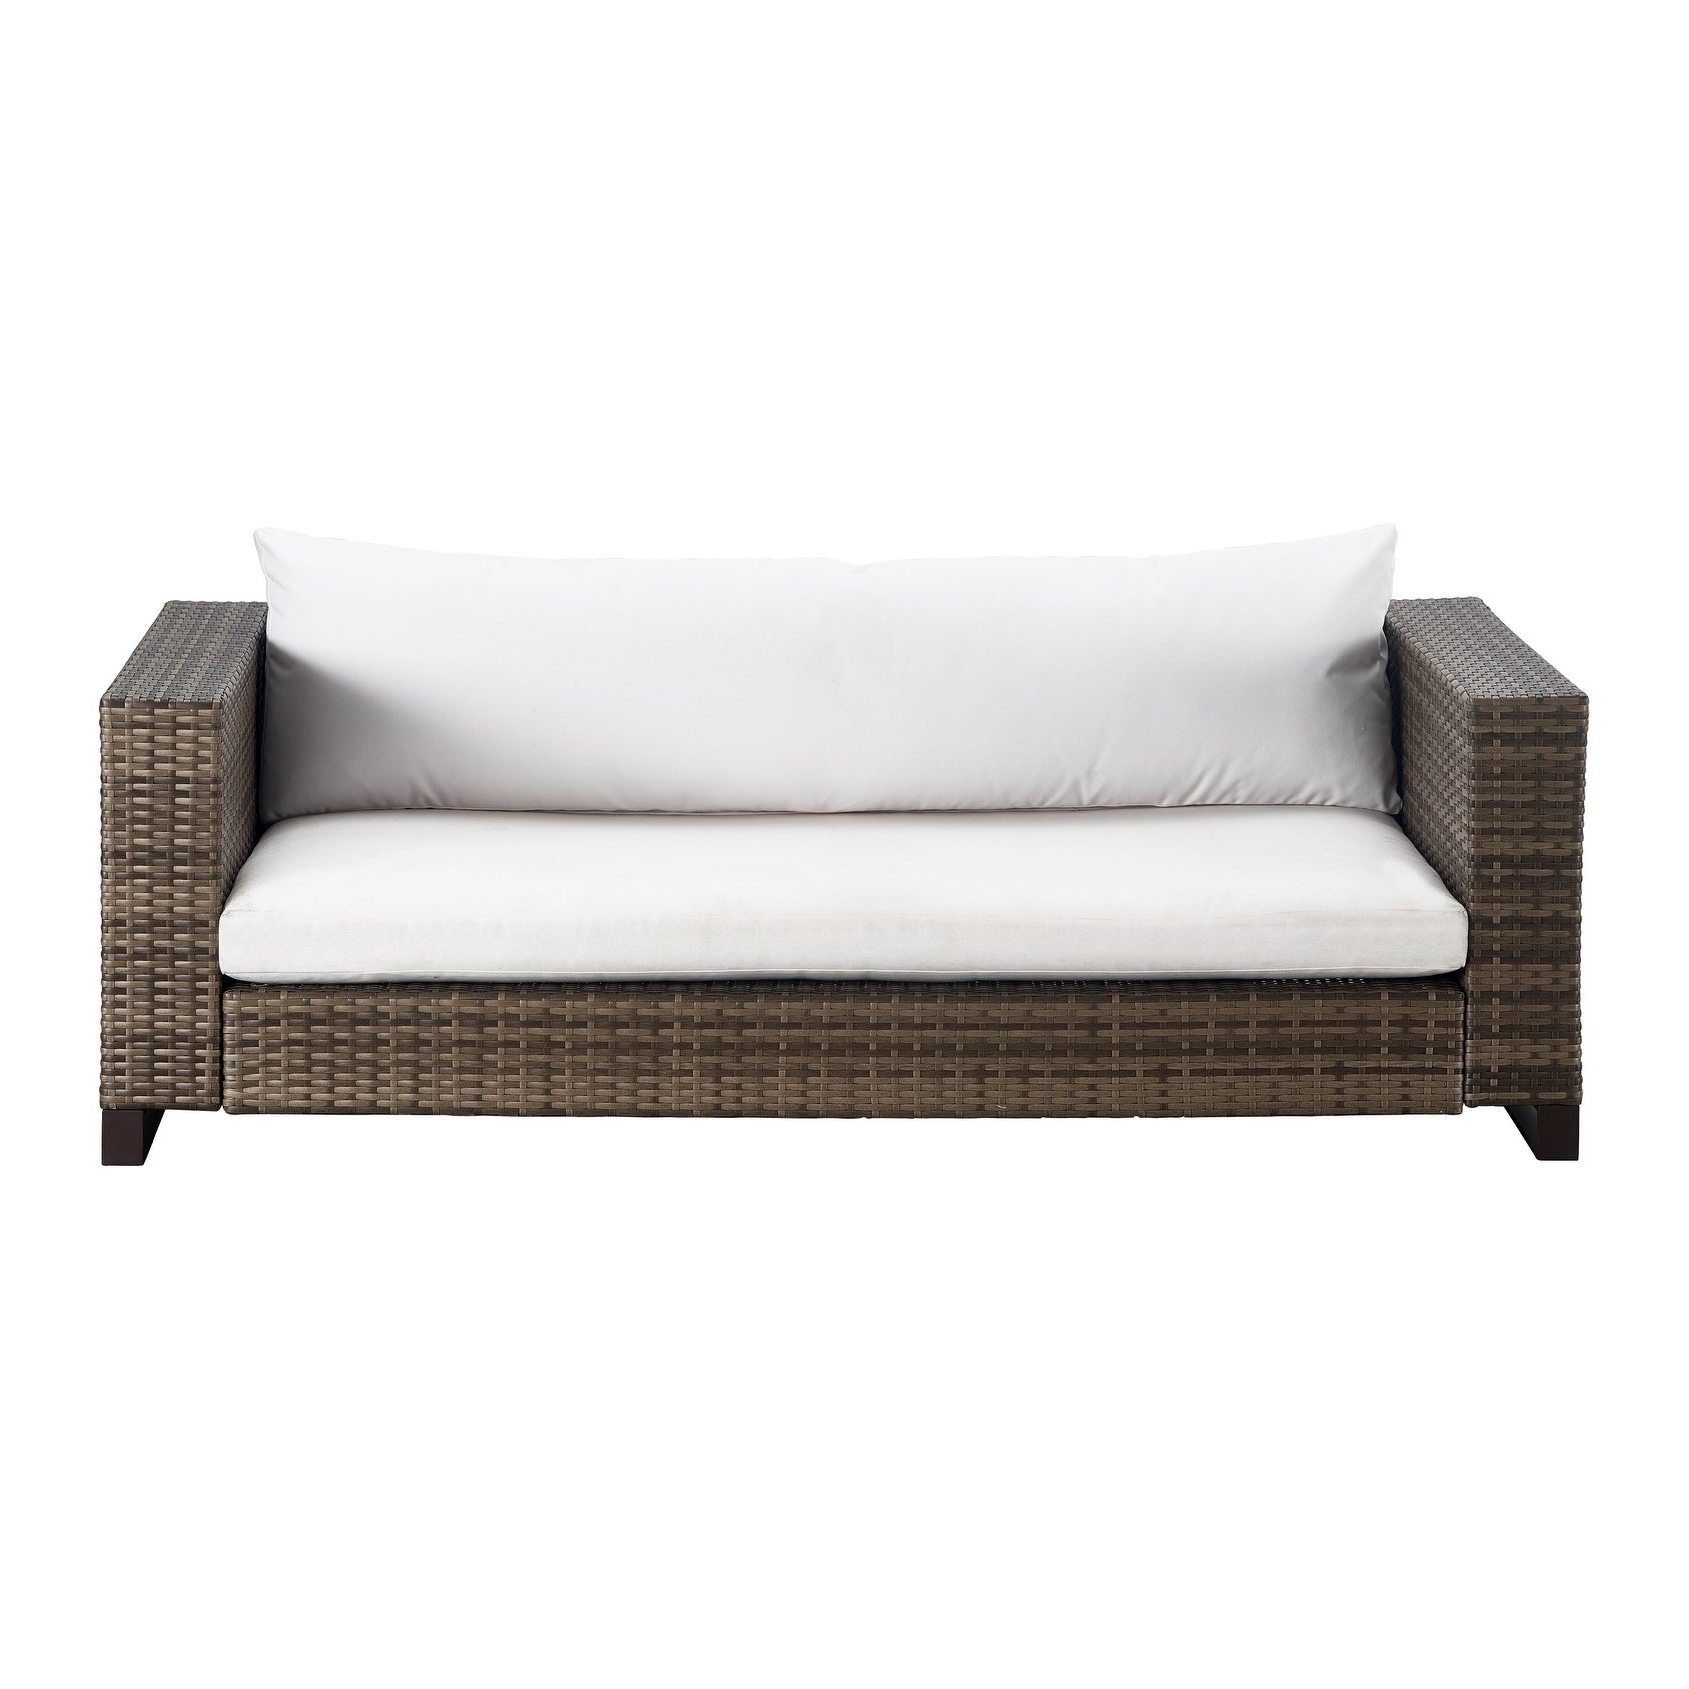 Oceanside Outdoor Wicker Loveseats With Cushions With Best And Newest Tommy Hilfiger Oceanside Outdoor Loveseat, Gray Wicker (View 15 of 25)